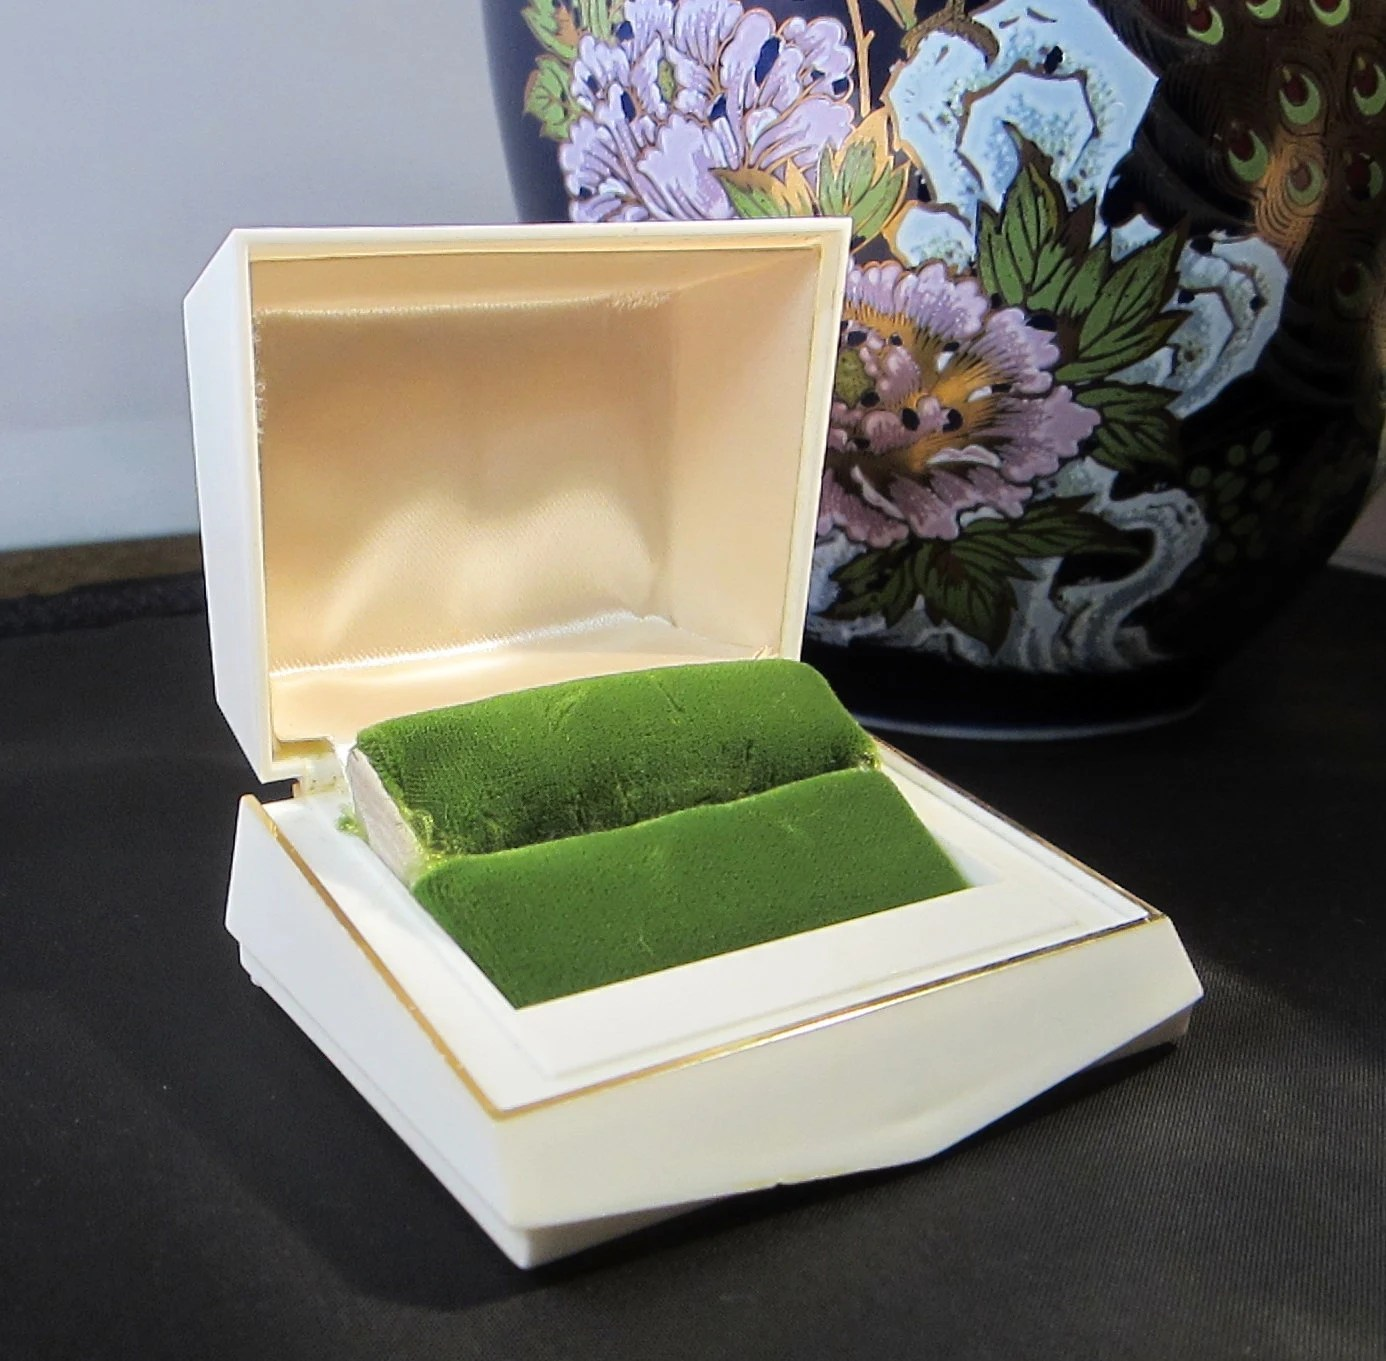 Art Deco Style Jewelry Boxes Presentation Ring Box Art Deco Style Celluoid Plastic Presentation Ring Box Presentation Jewelry Box